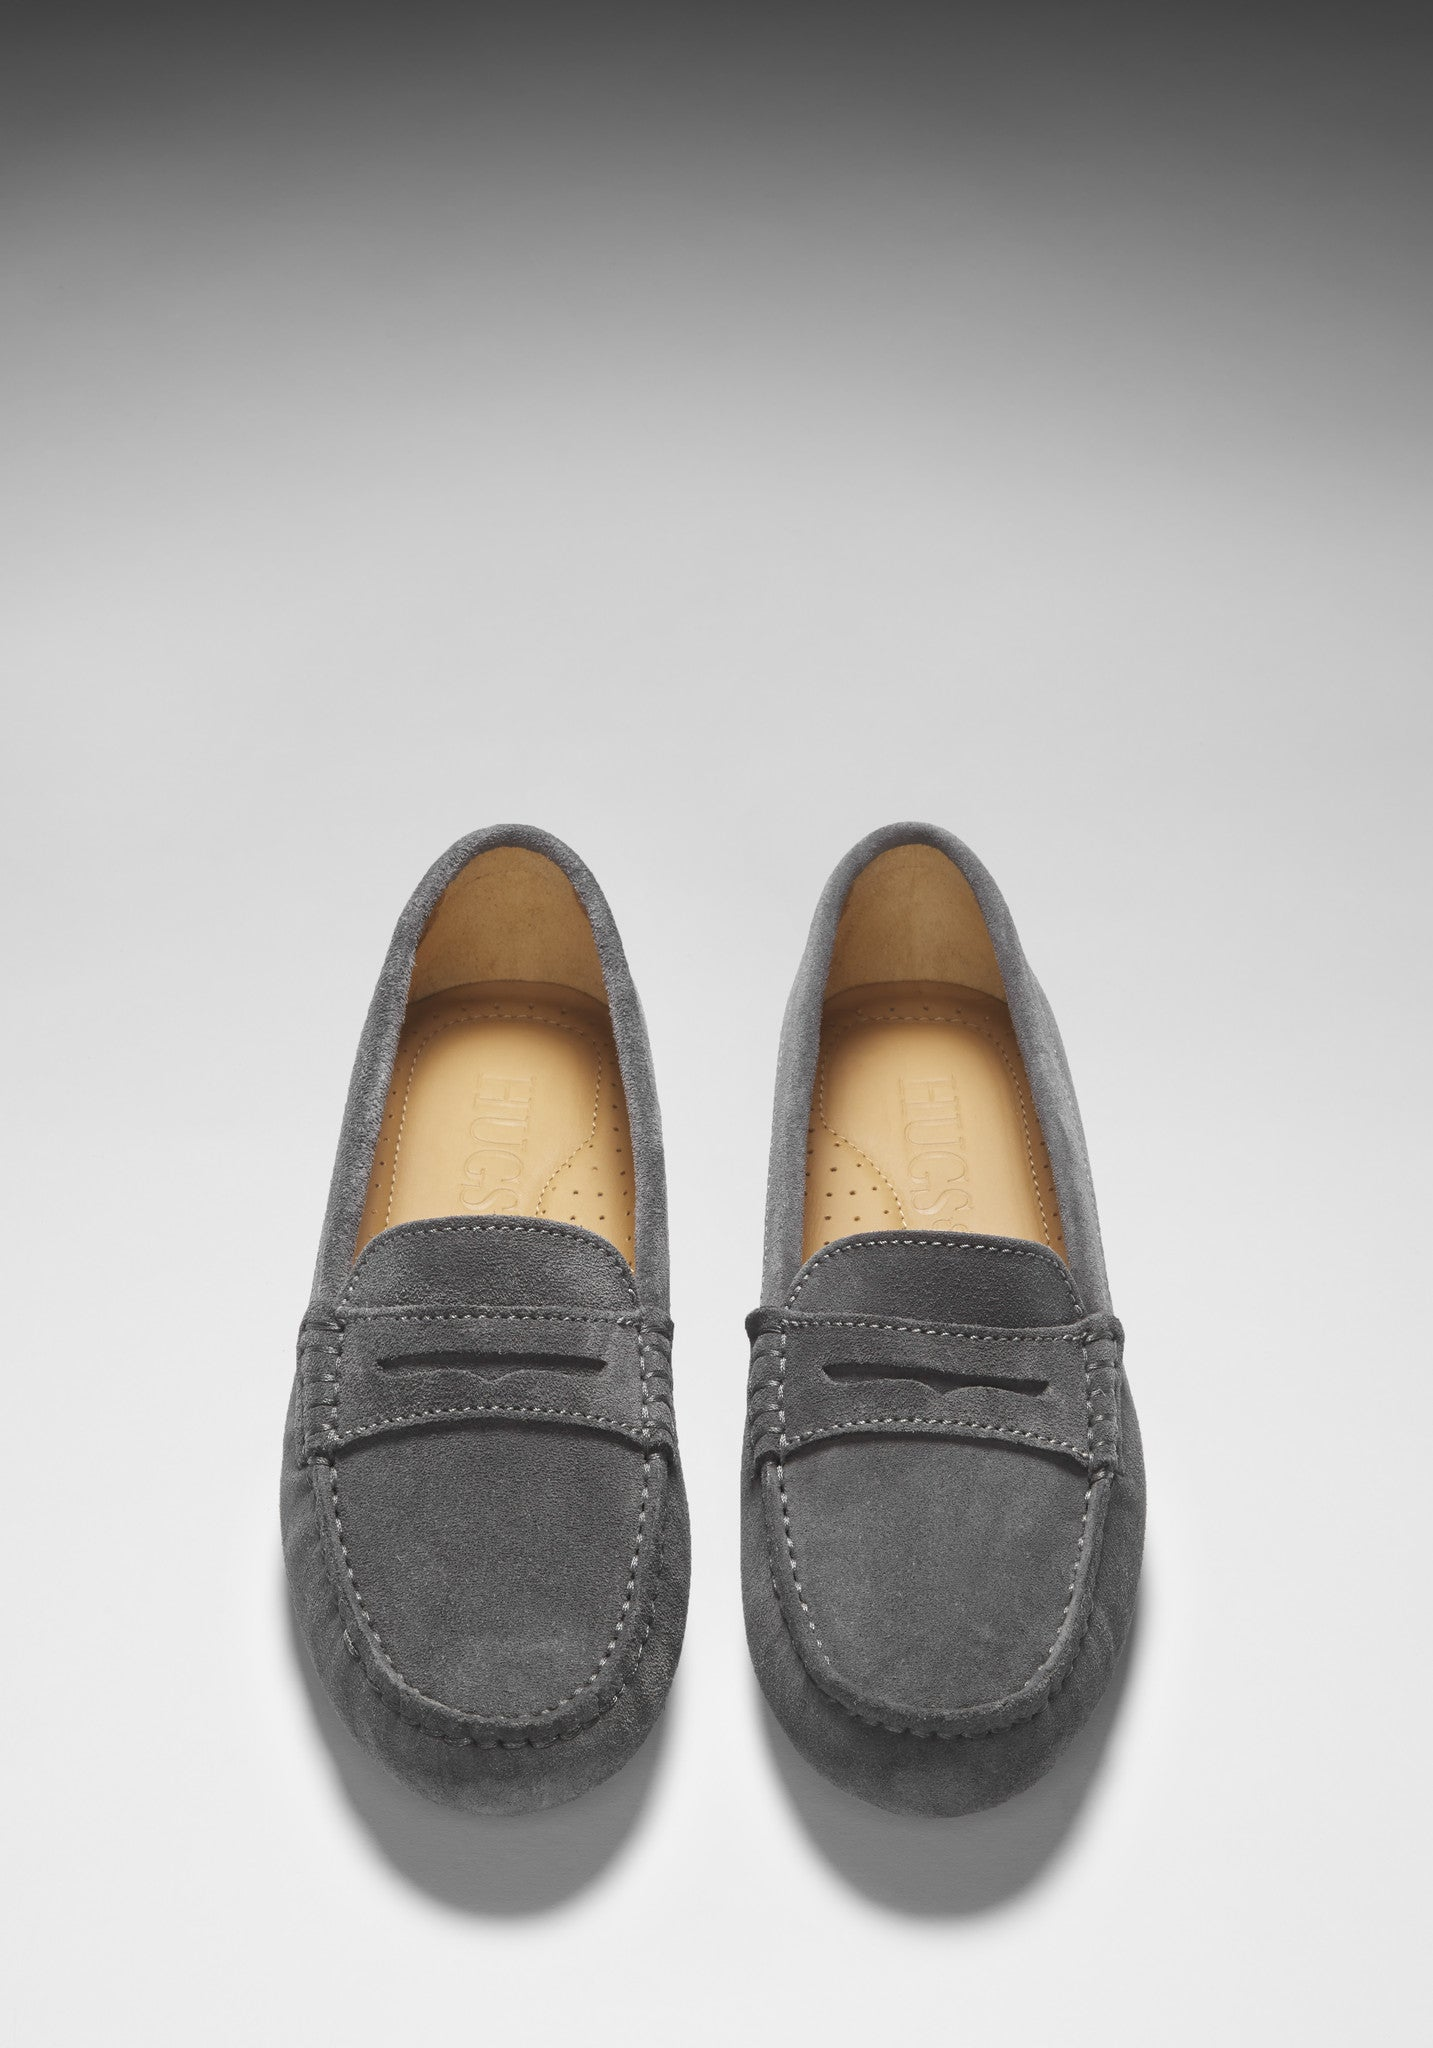 Women's Penny Driving Loafers, taupe suede - Hugs & Co.